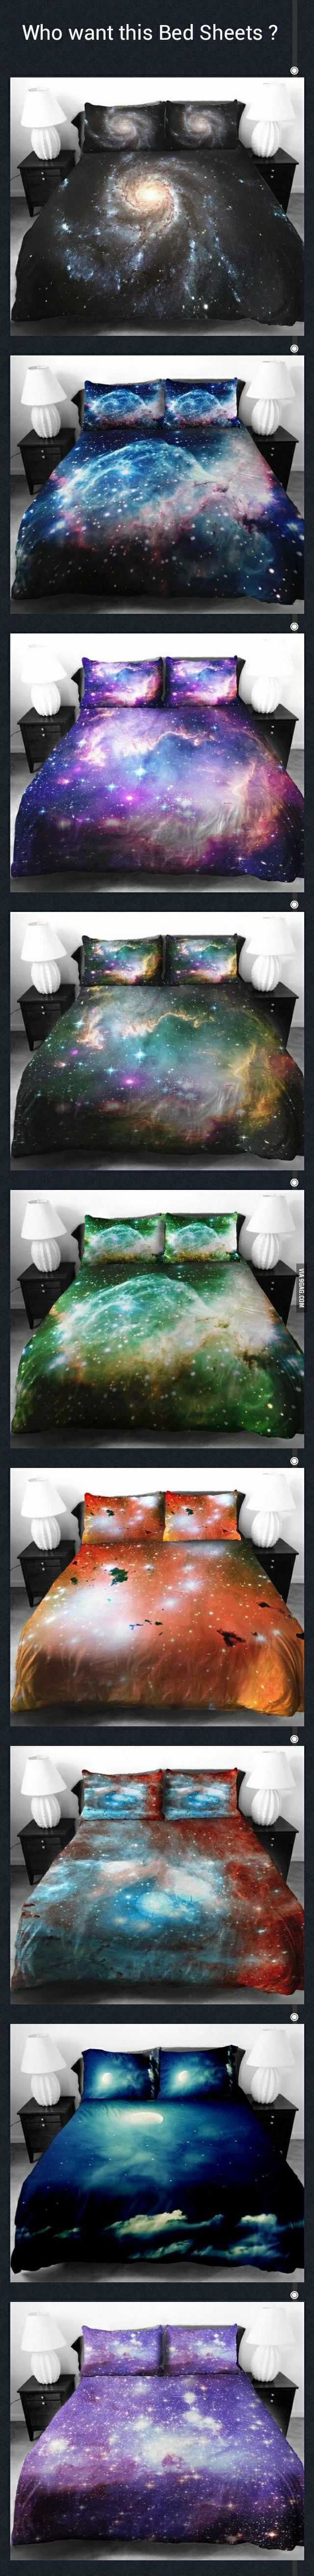 Who want these Universe Bed Sheets? Shut up & take my money!